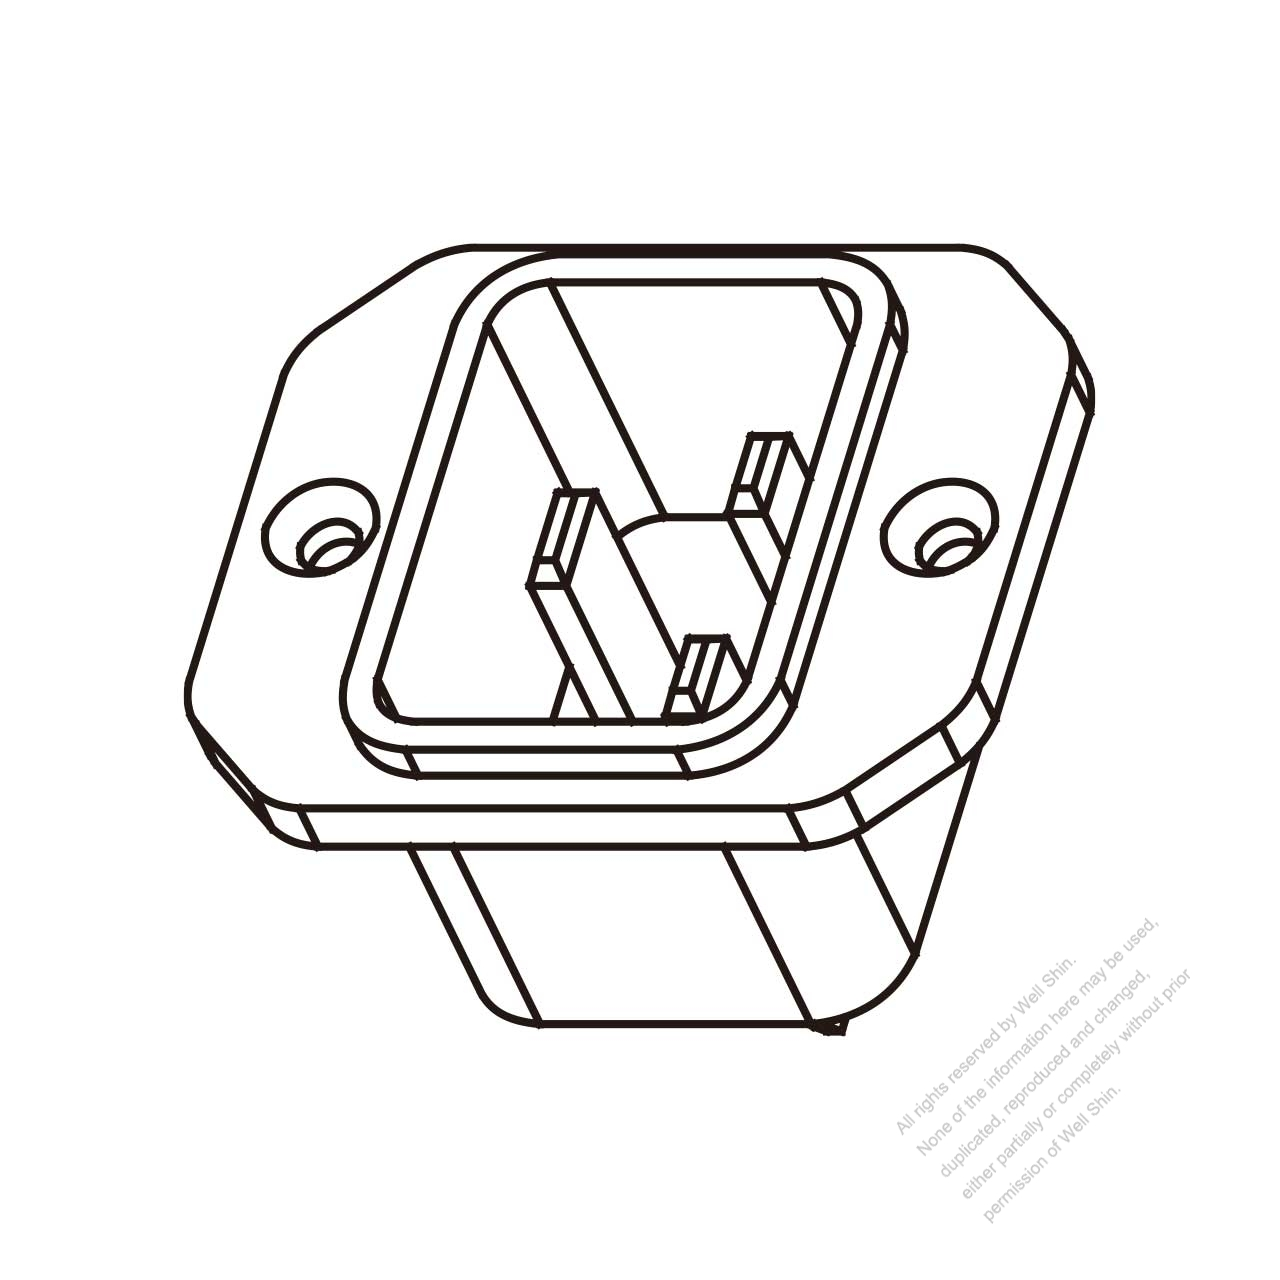 AC Socket IEC 60320-1 (C20) Appliance Inlet, Screw Type